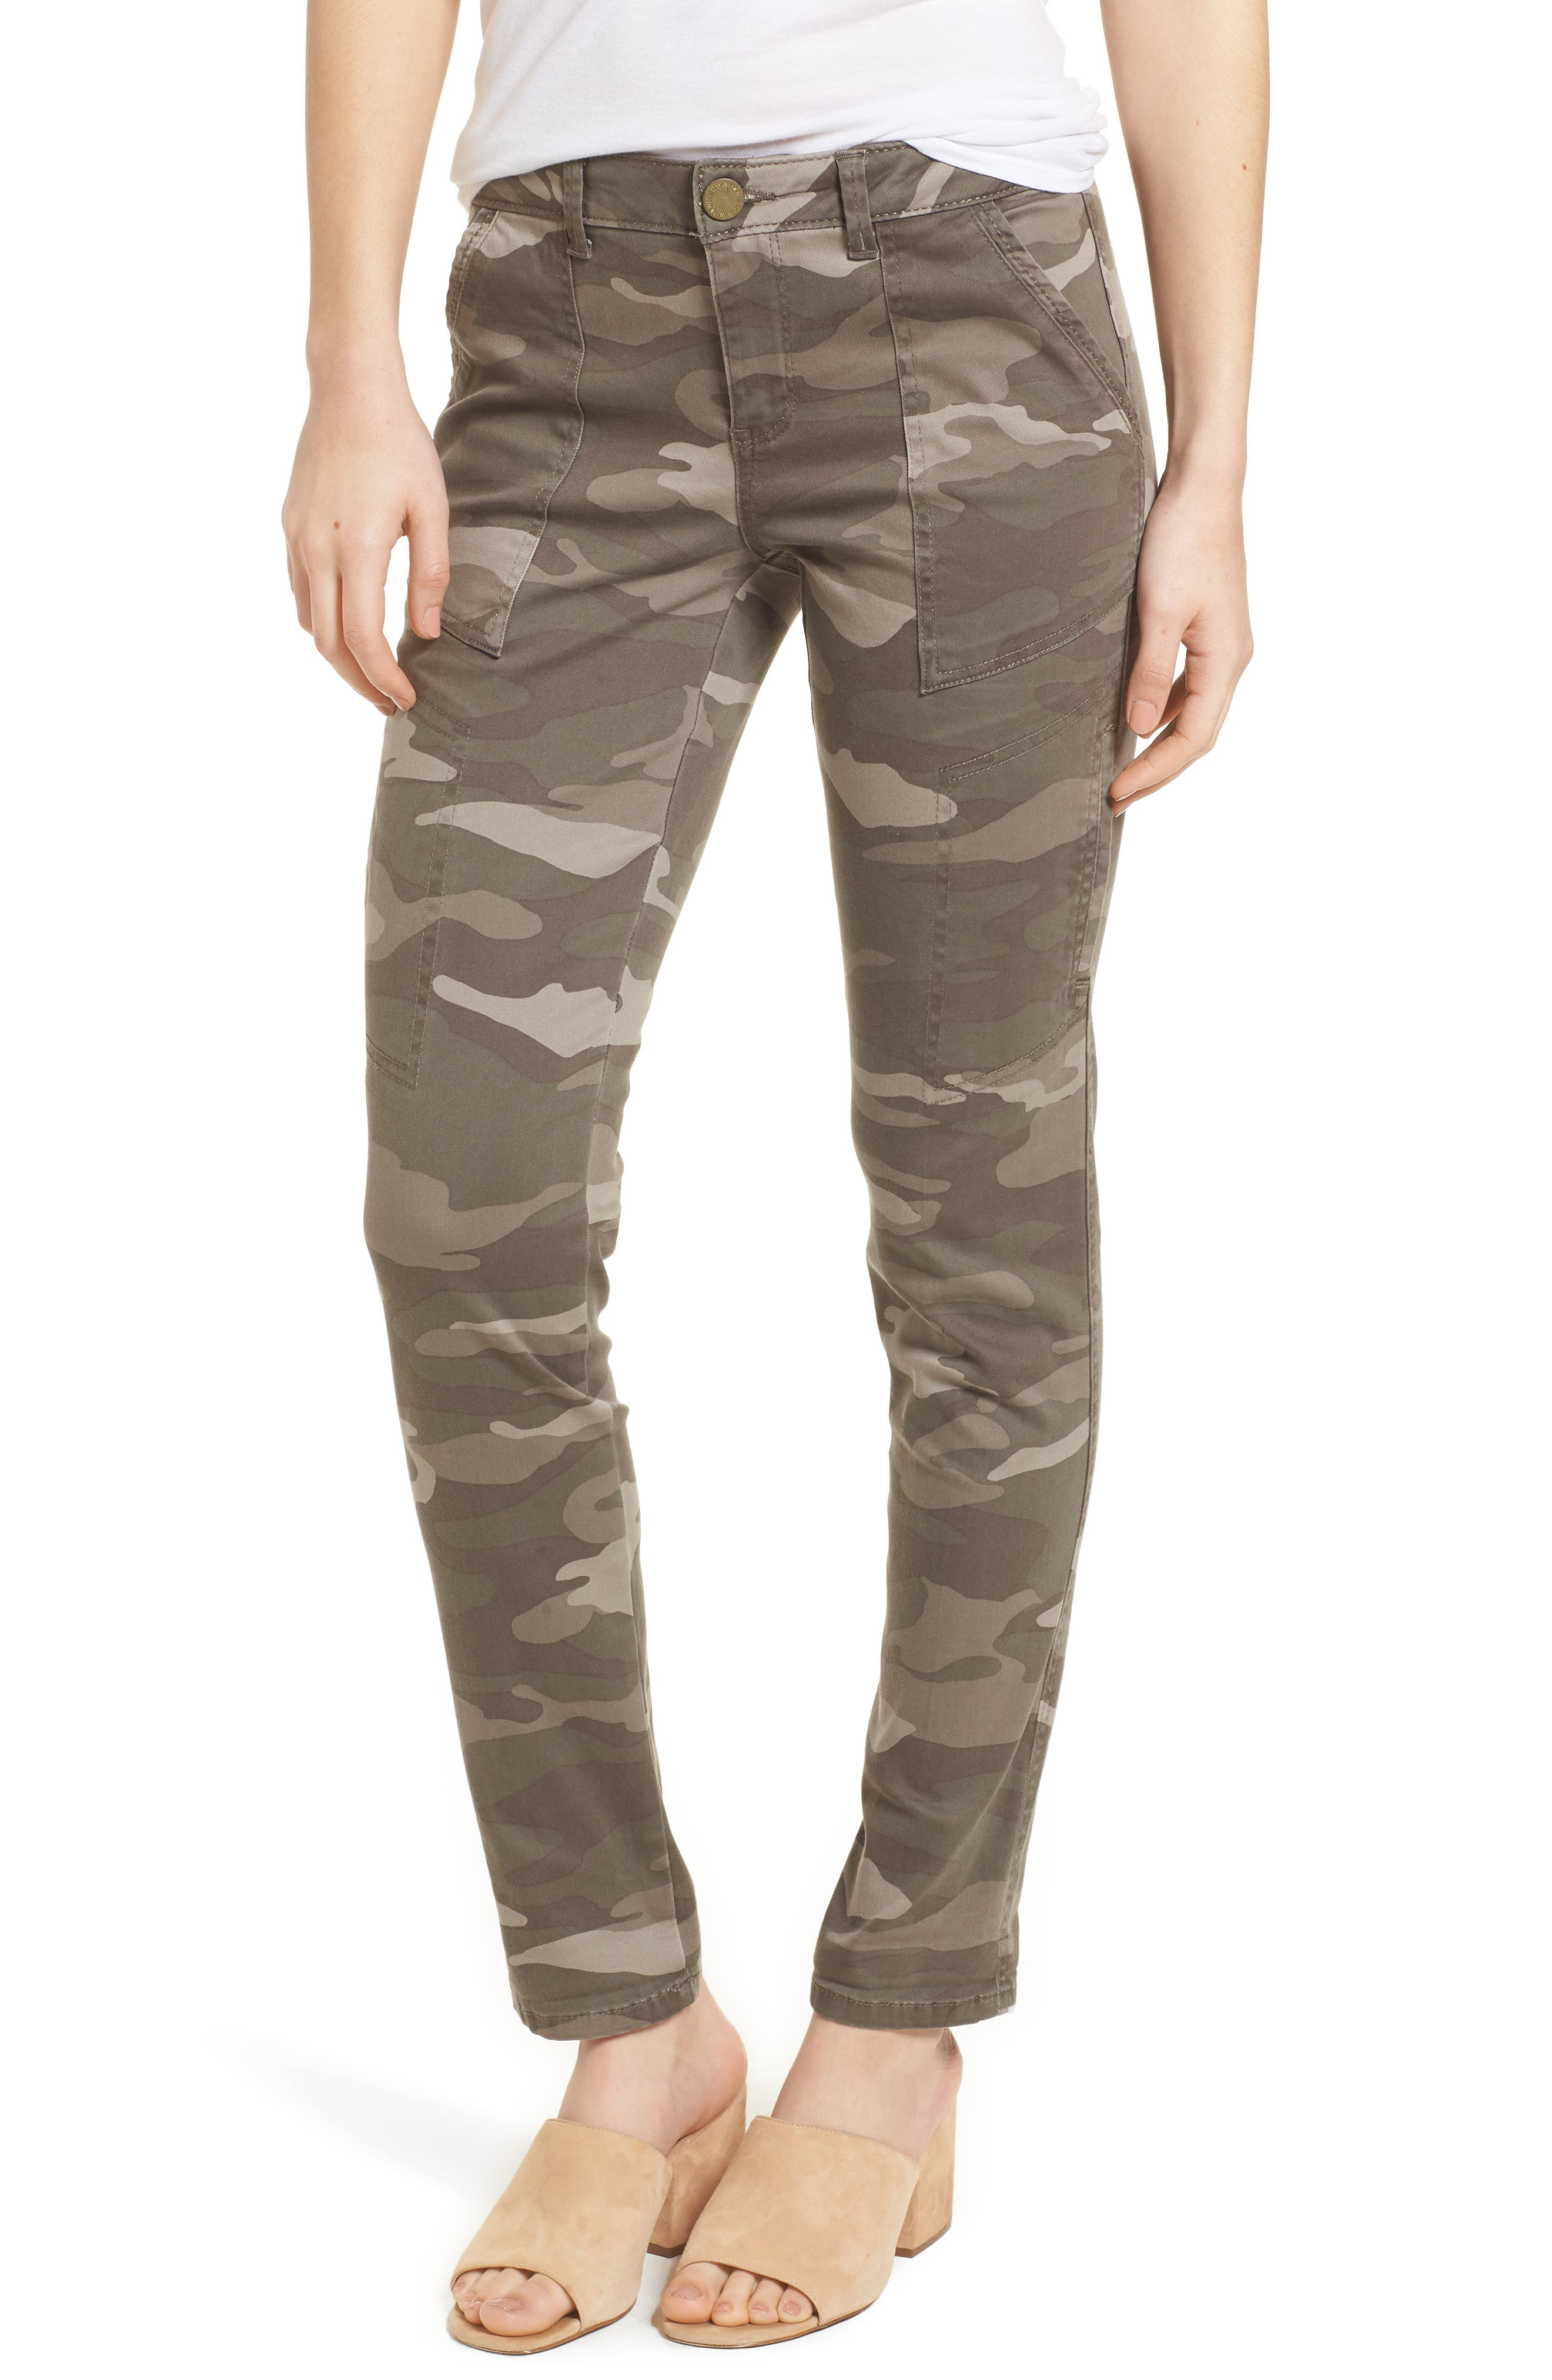 Wit & Wisdom Twill Camo Cargo Pants (Mr. Mushroom) (Regular & Petite) (Nordstrom Exclusive)